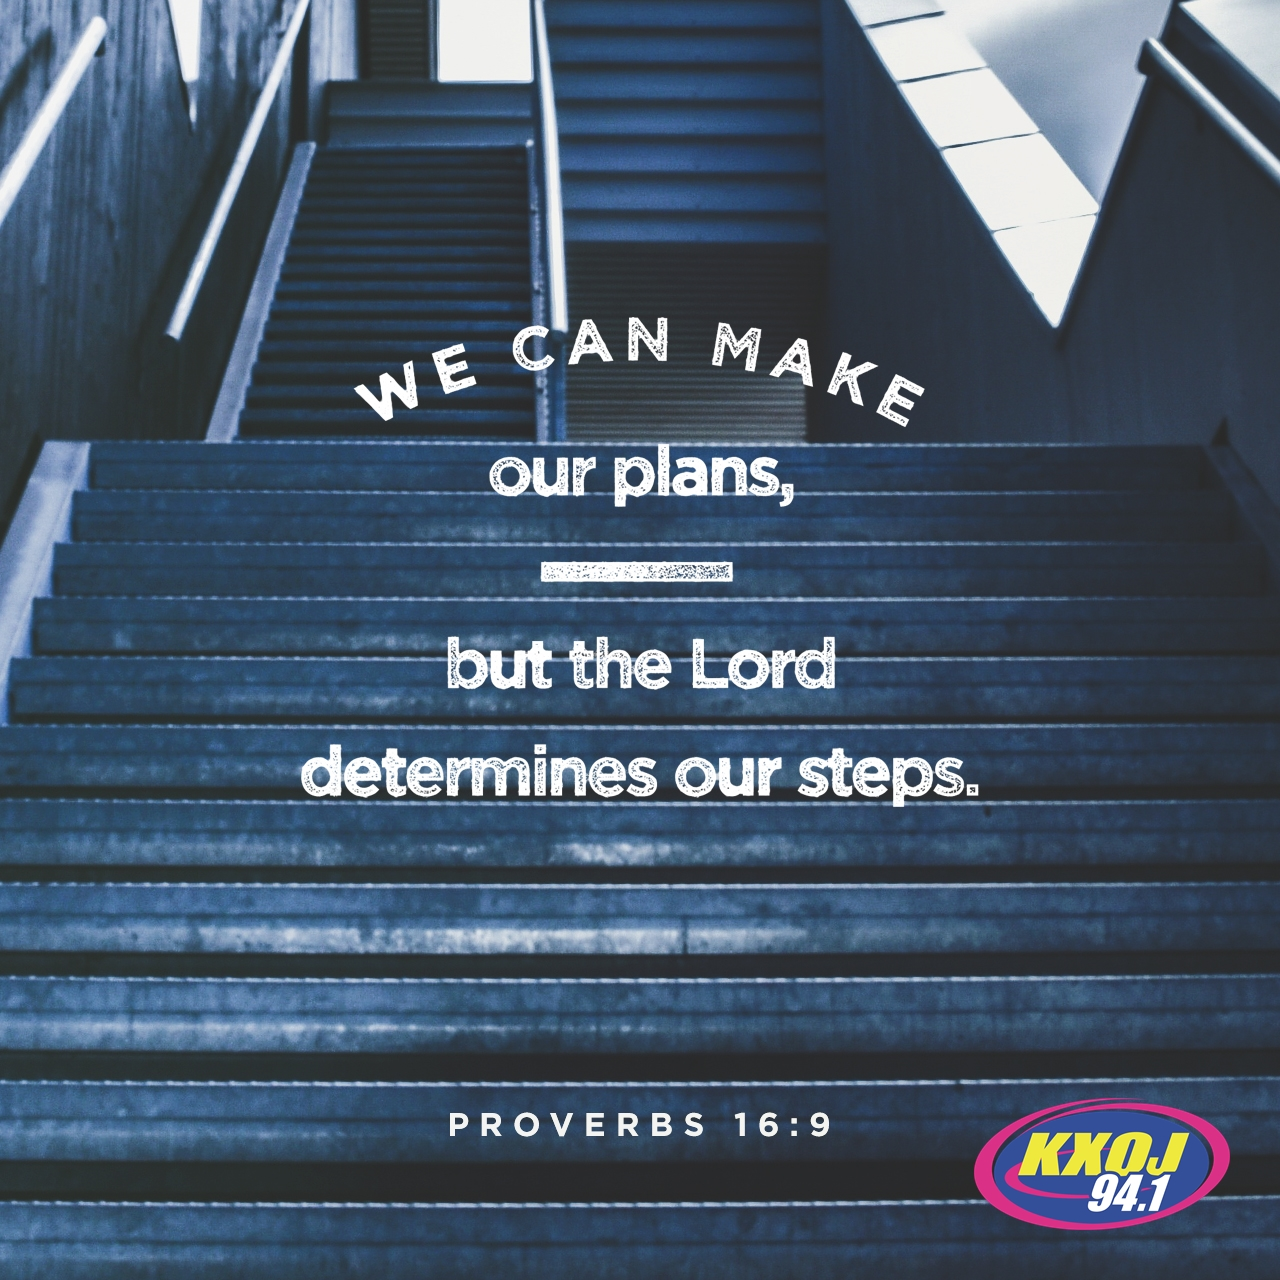 November 2nd - Proverbs 16:9